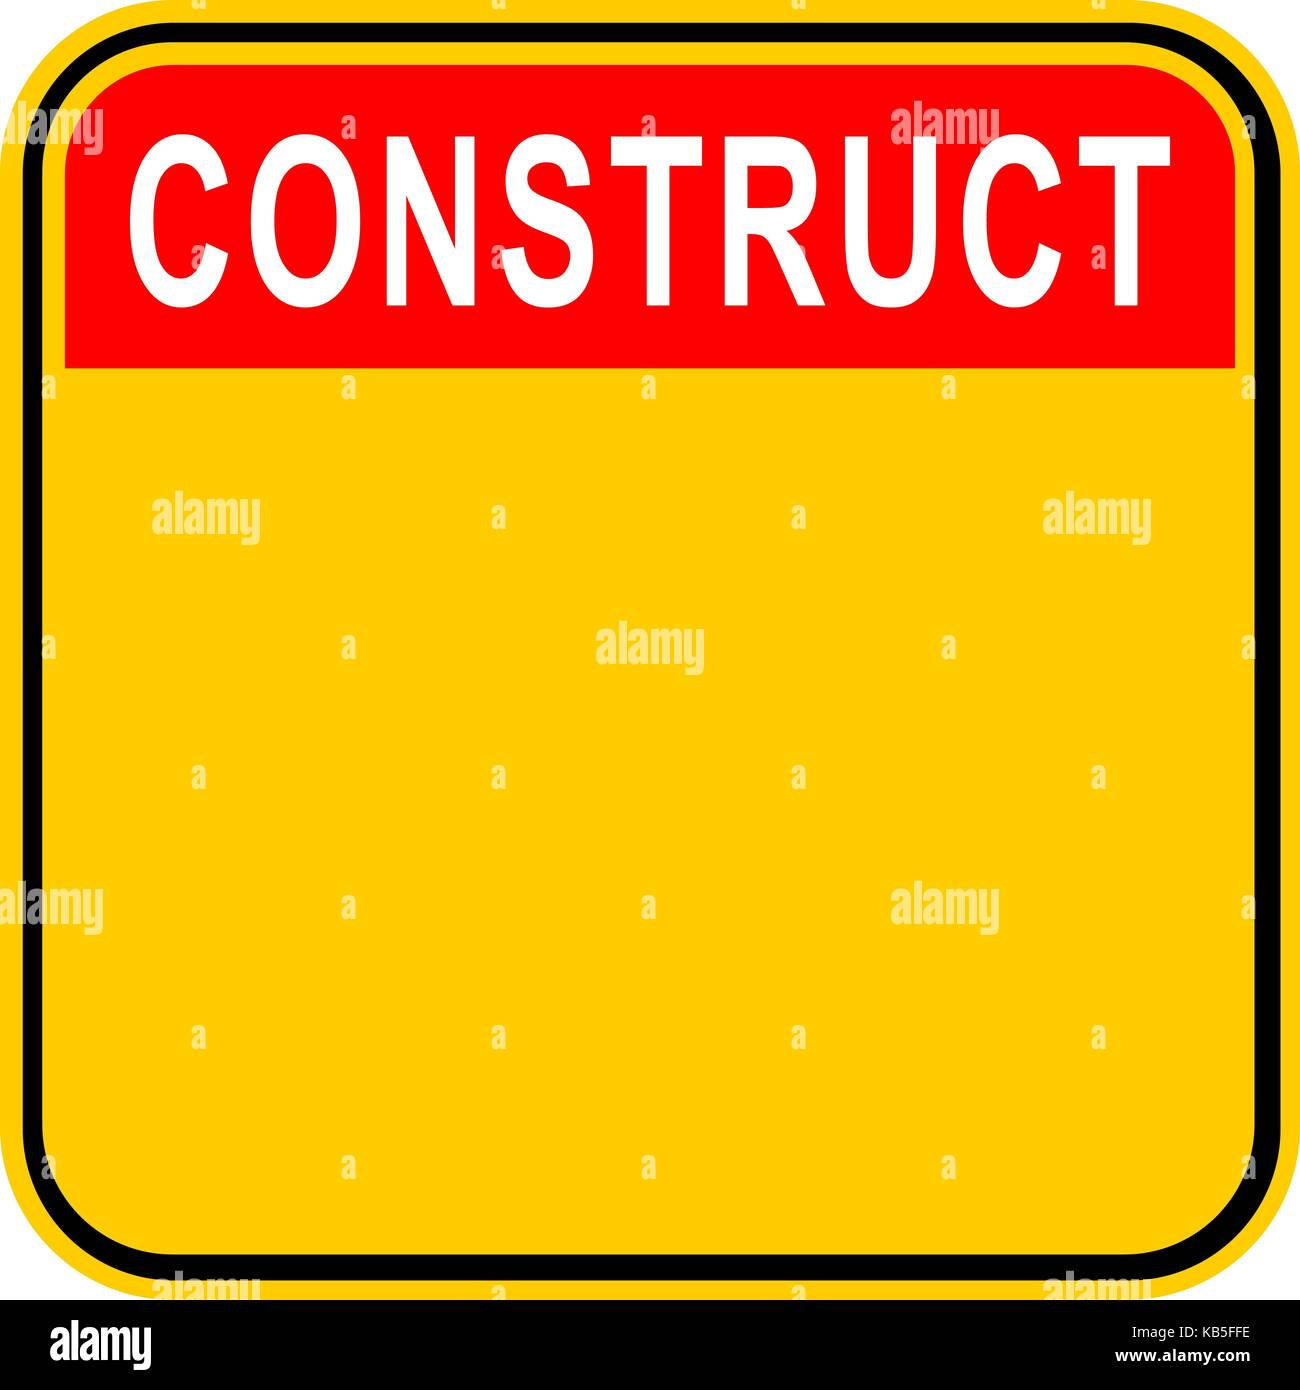 Use it in all your designs. Empty safety sign board with word Construct. Sticker square-shaped painted in black, - Stock Image